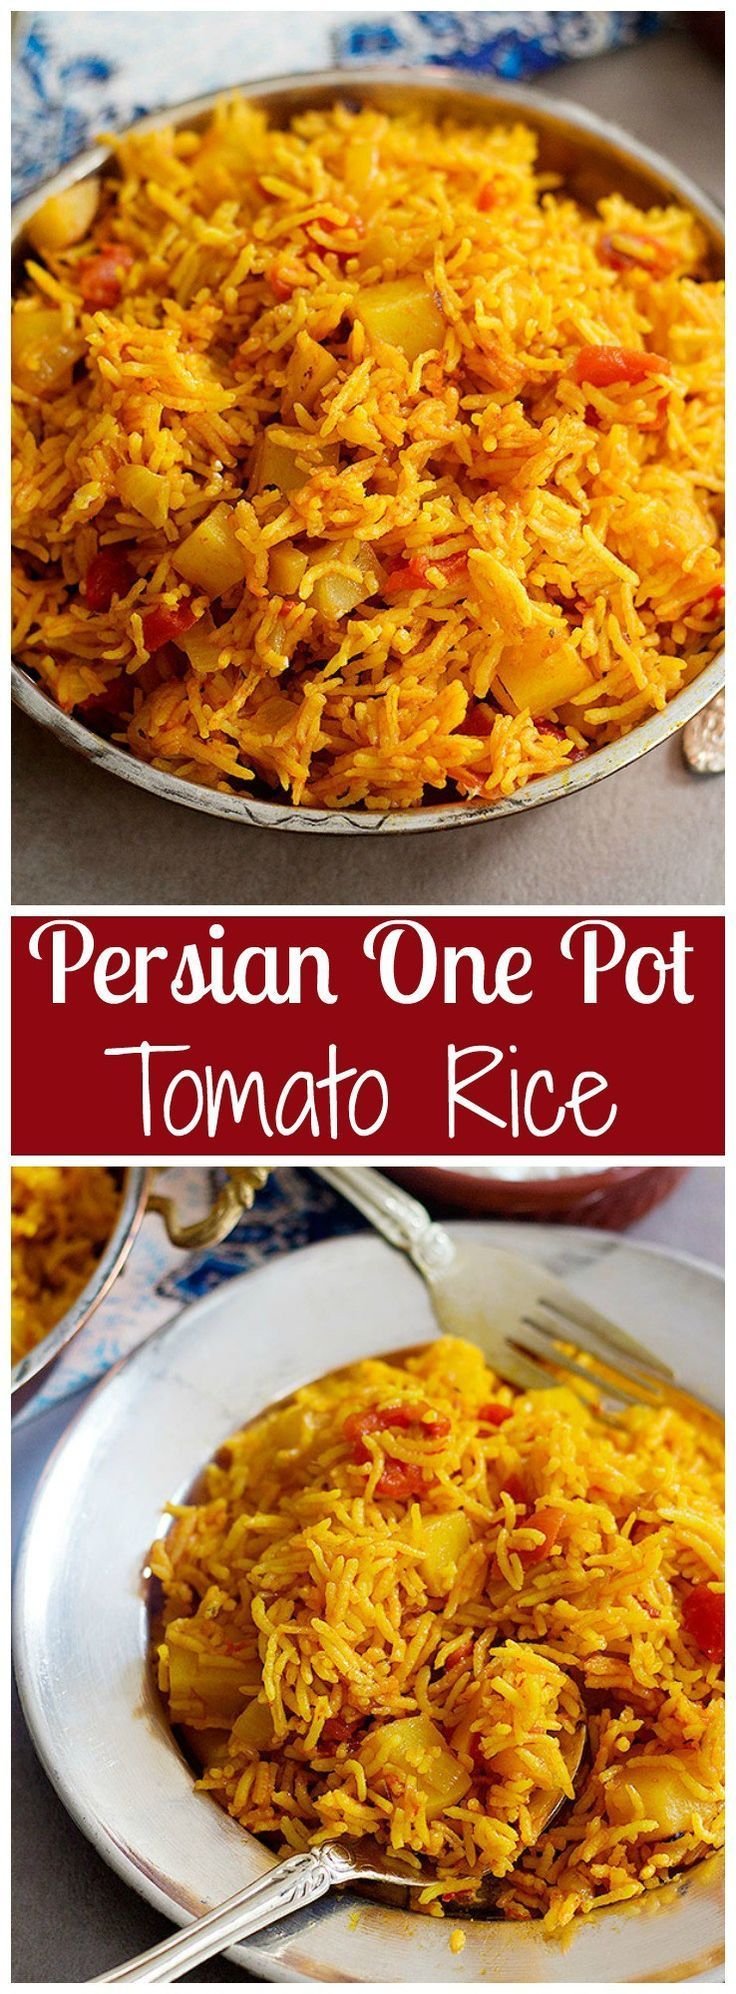 awesome Persian One Pot Tomato Rice - Dami Gojeh Farangi is an easy vegetarian dish full...by http://dezdemooncooking4u.gdn